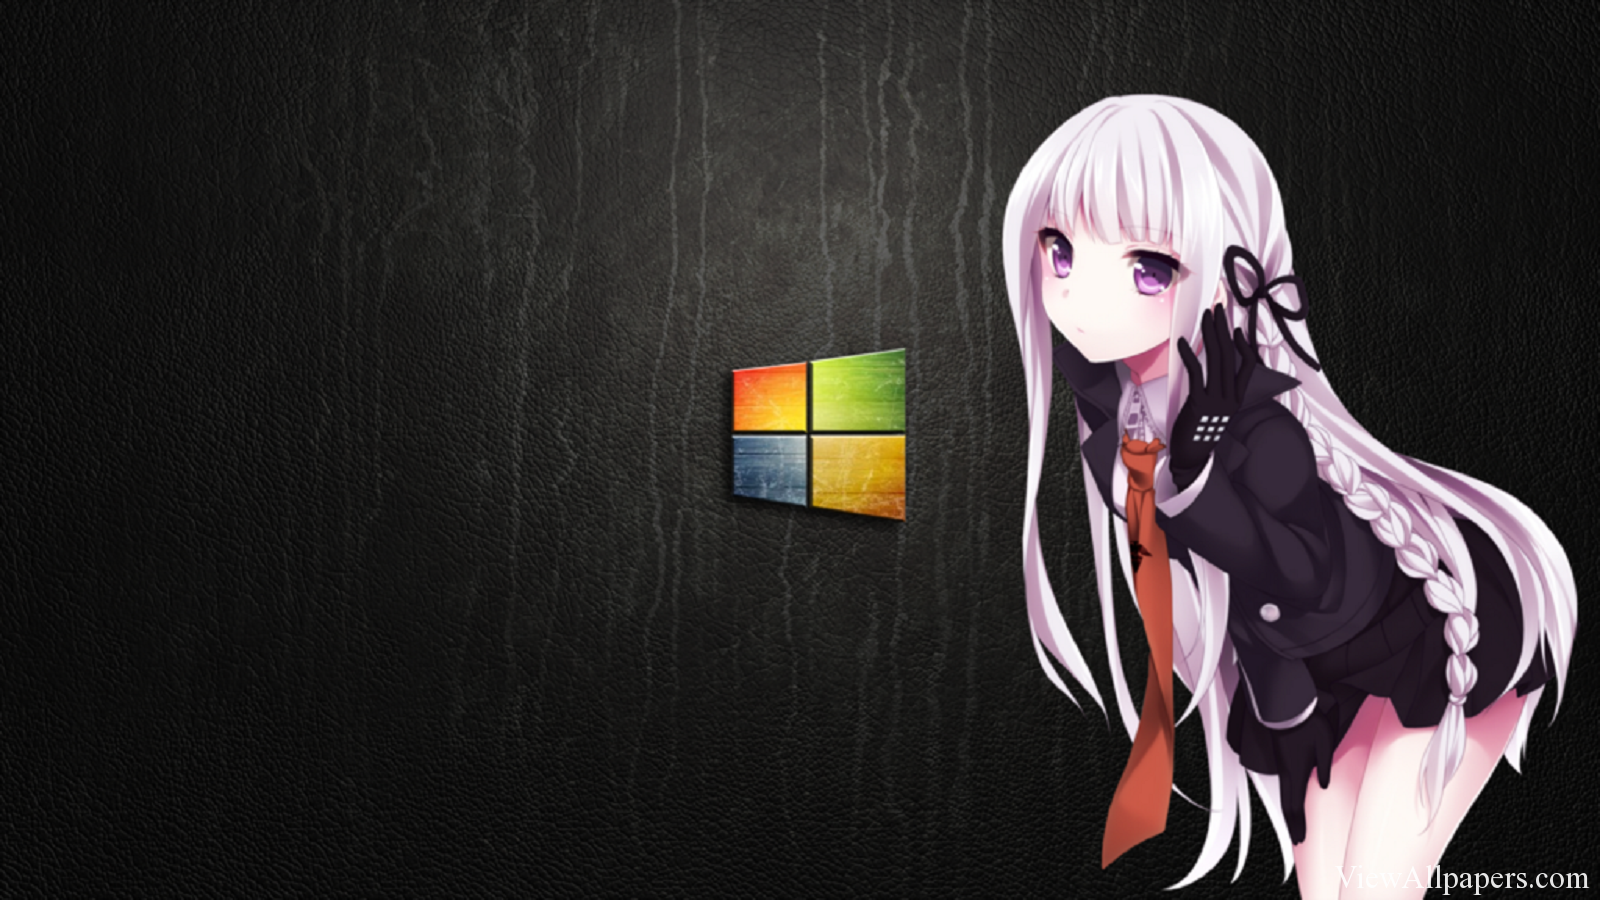 Anime High Resolution Wallpaper download Windows Anime For PC 1600x900